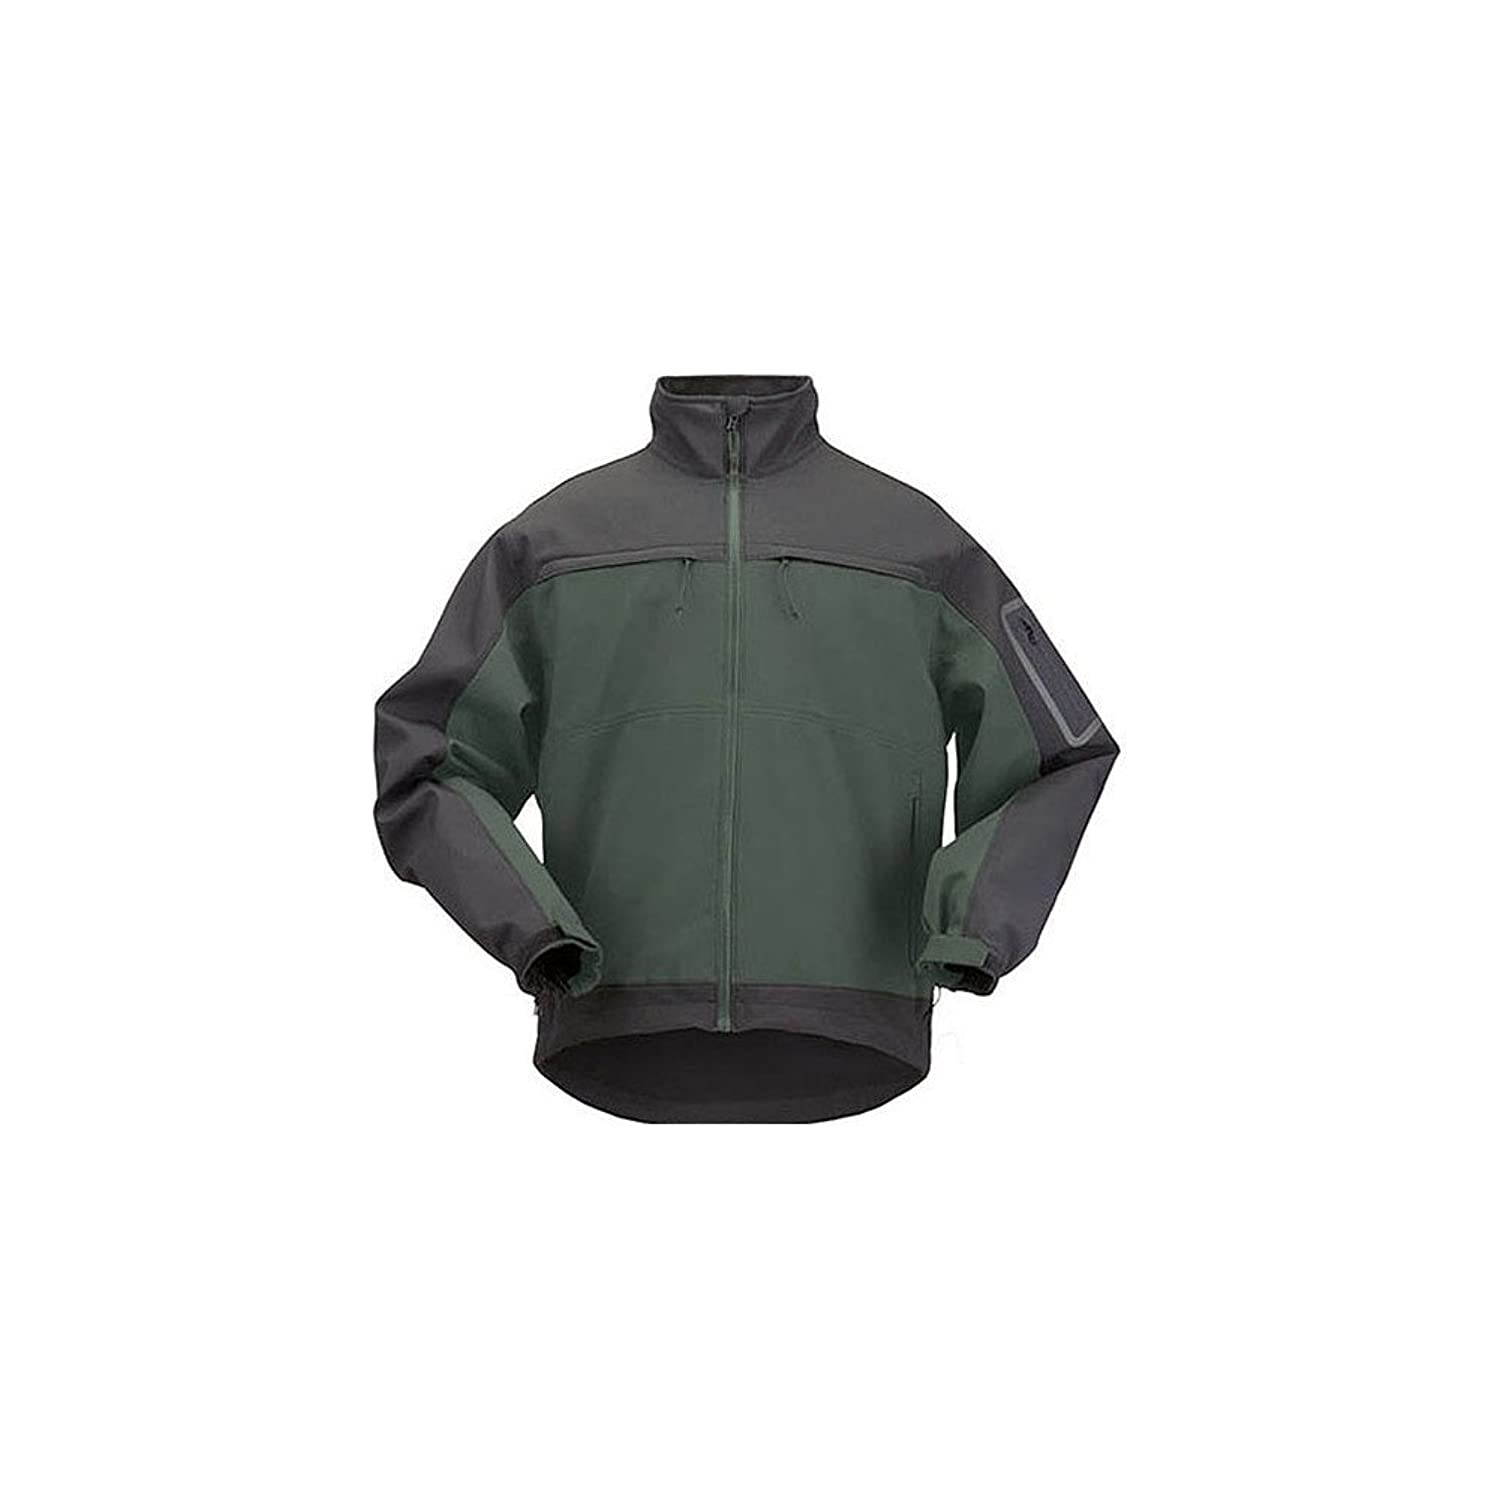 5.11 Tactical Chameleon Softshell Jacket X Small Moss